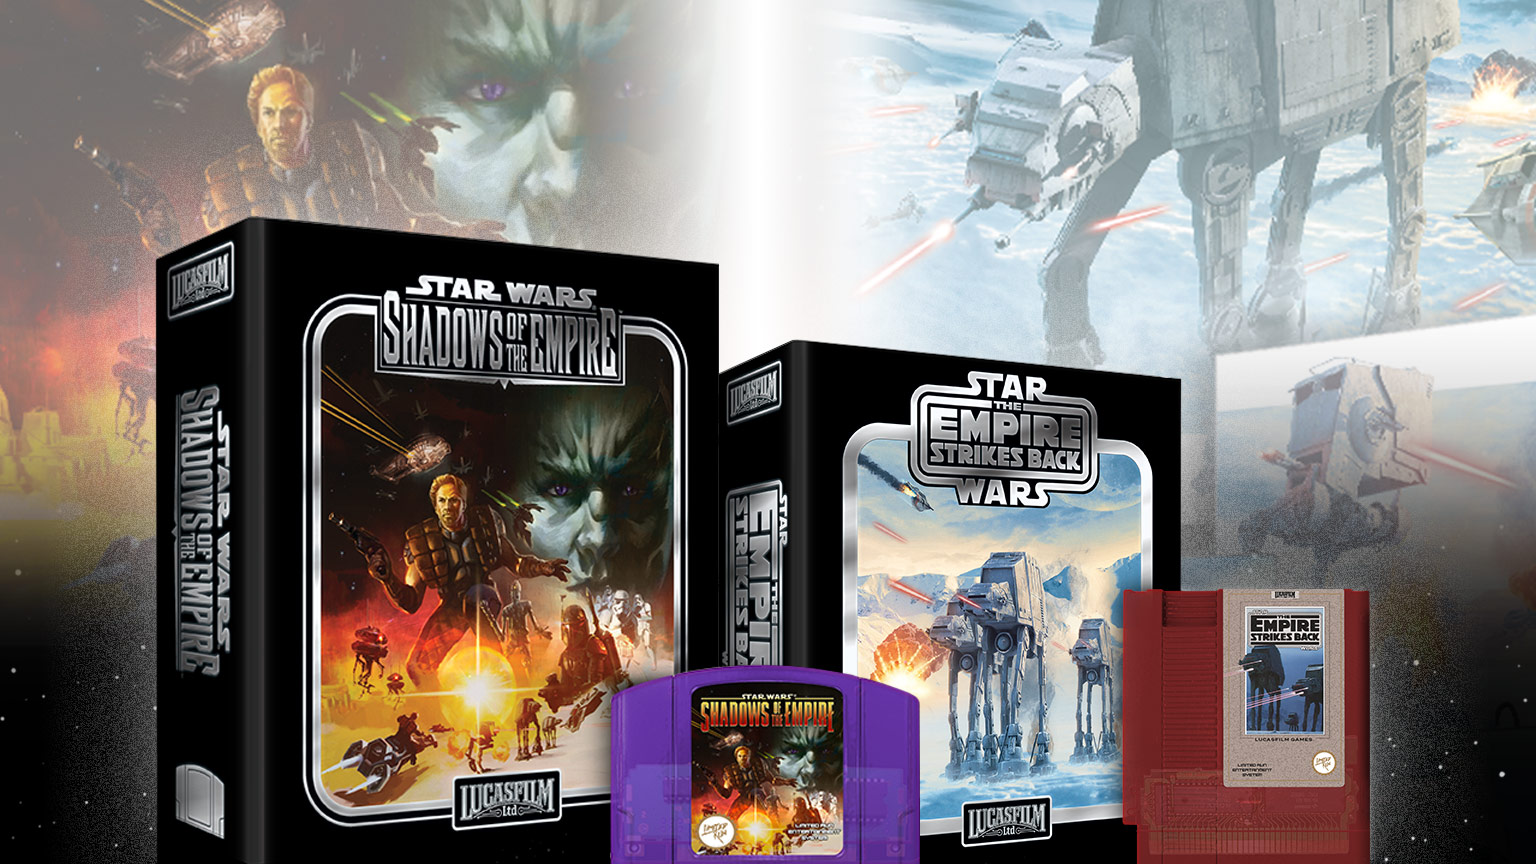 Limited Run Games Star Wars games Shadows of the Empire and The Empire Strikes Back